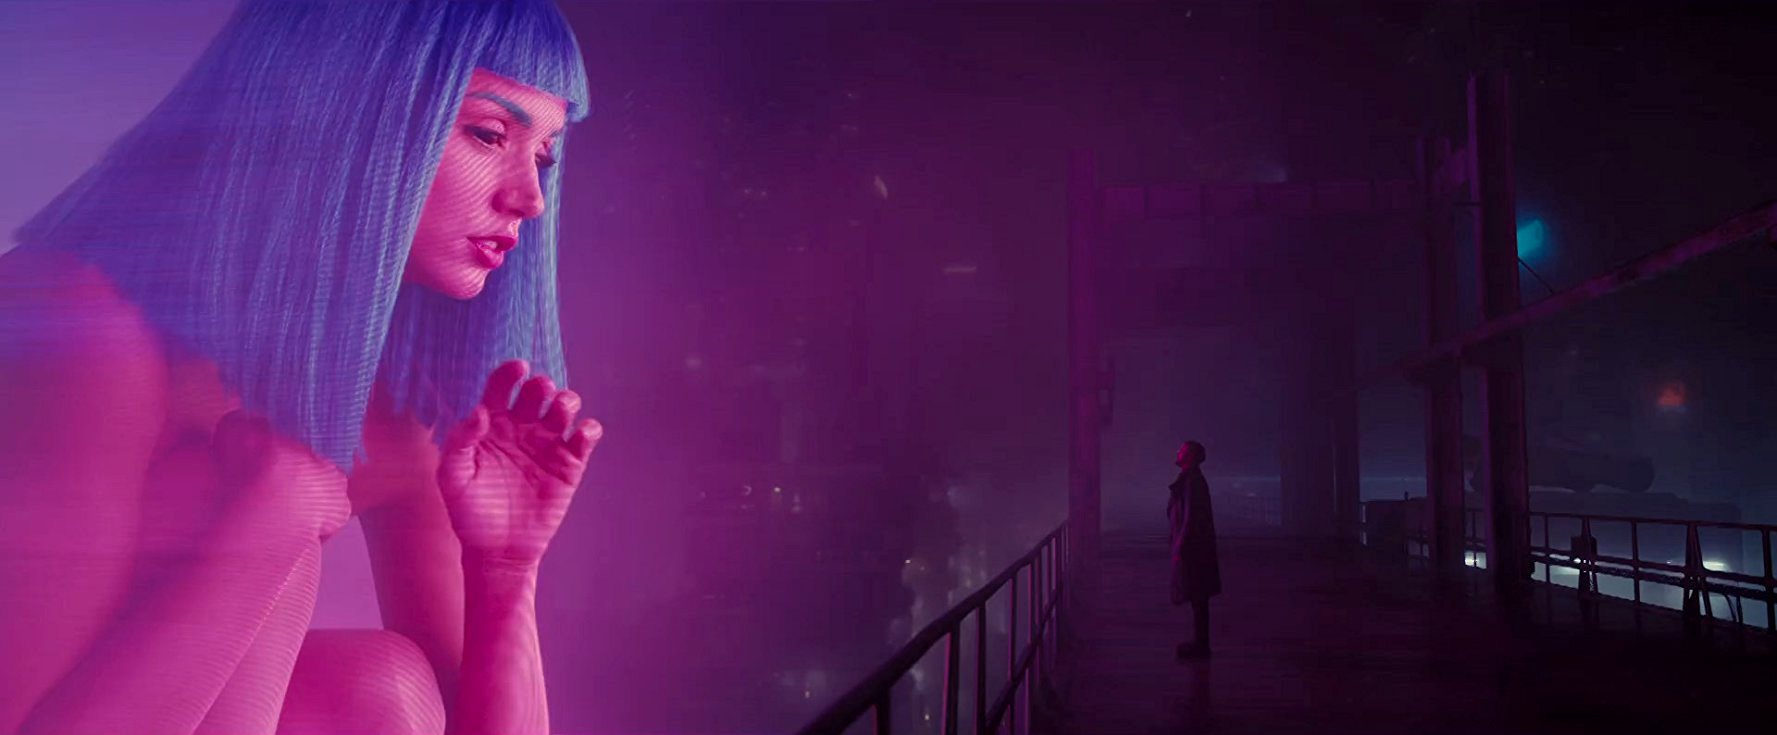 Ryan Gosling greeted by a giant-sized hologram in Blade Runner 2049 (2017)